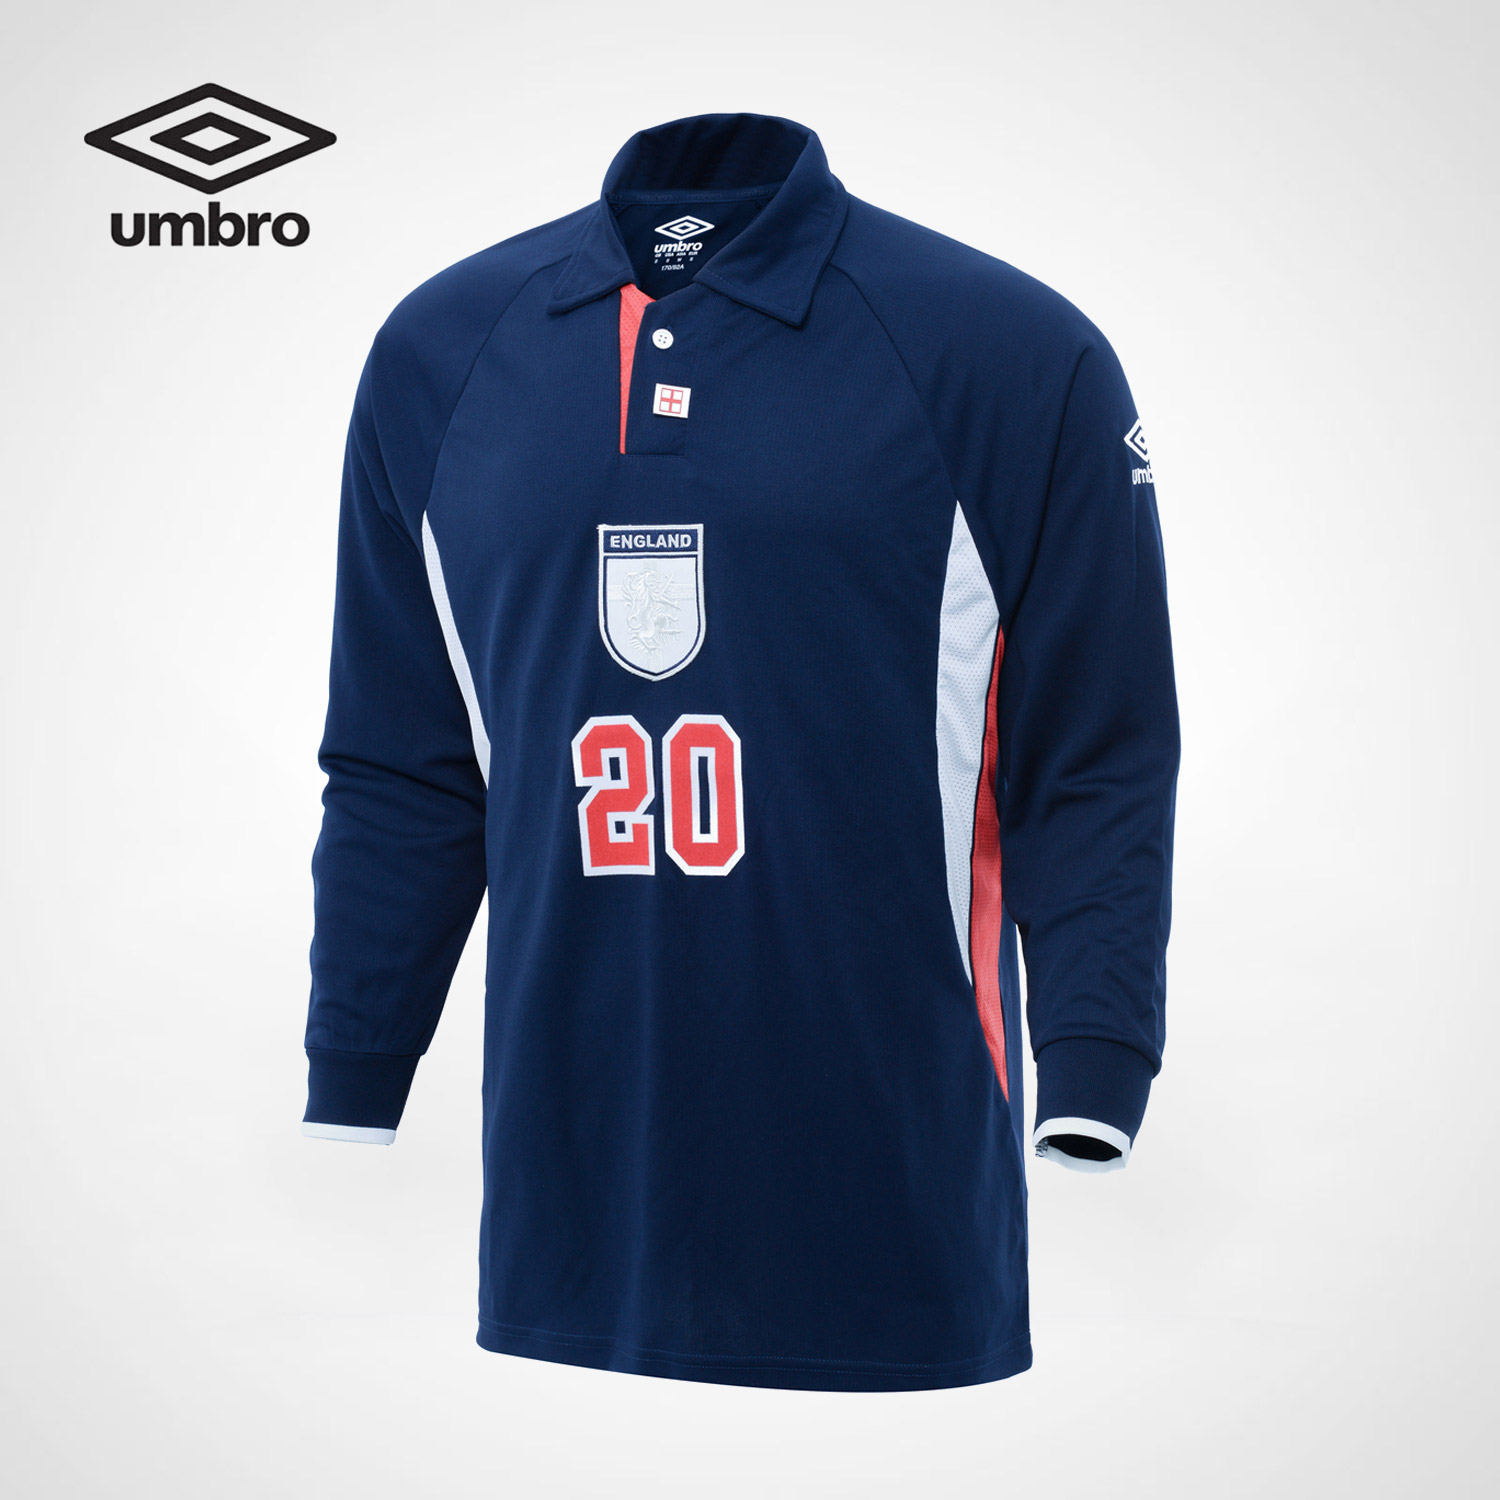 Umbro New Erwin England Classic Retro Men Sports Long Sleeved Polo Sweater POLO Shirt Men Cotton Sportswear UI173AP2601